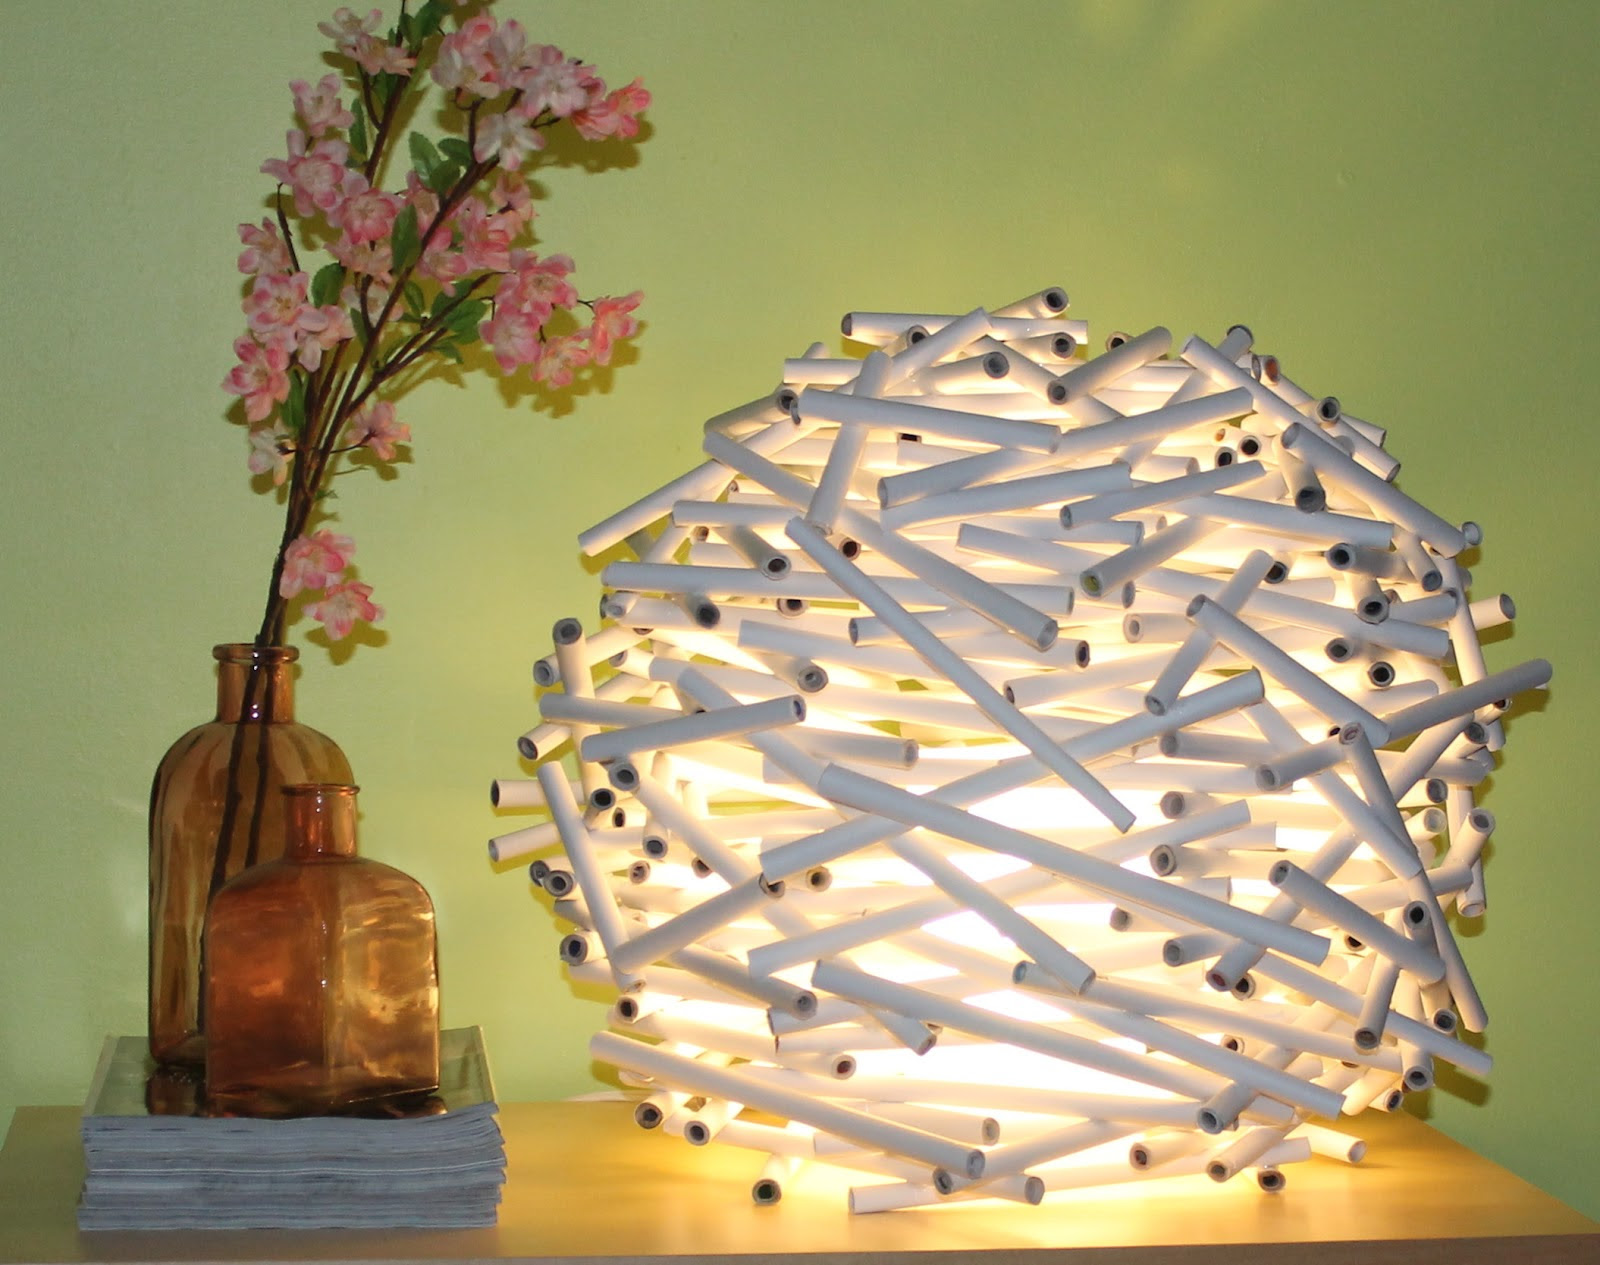 Diy How To Make A Birds Nest Lamp Shade Out Of Newspaper Catch